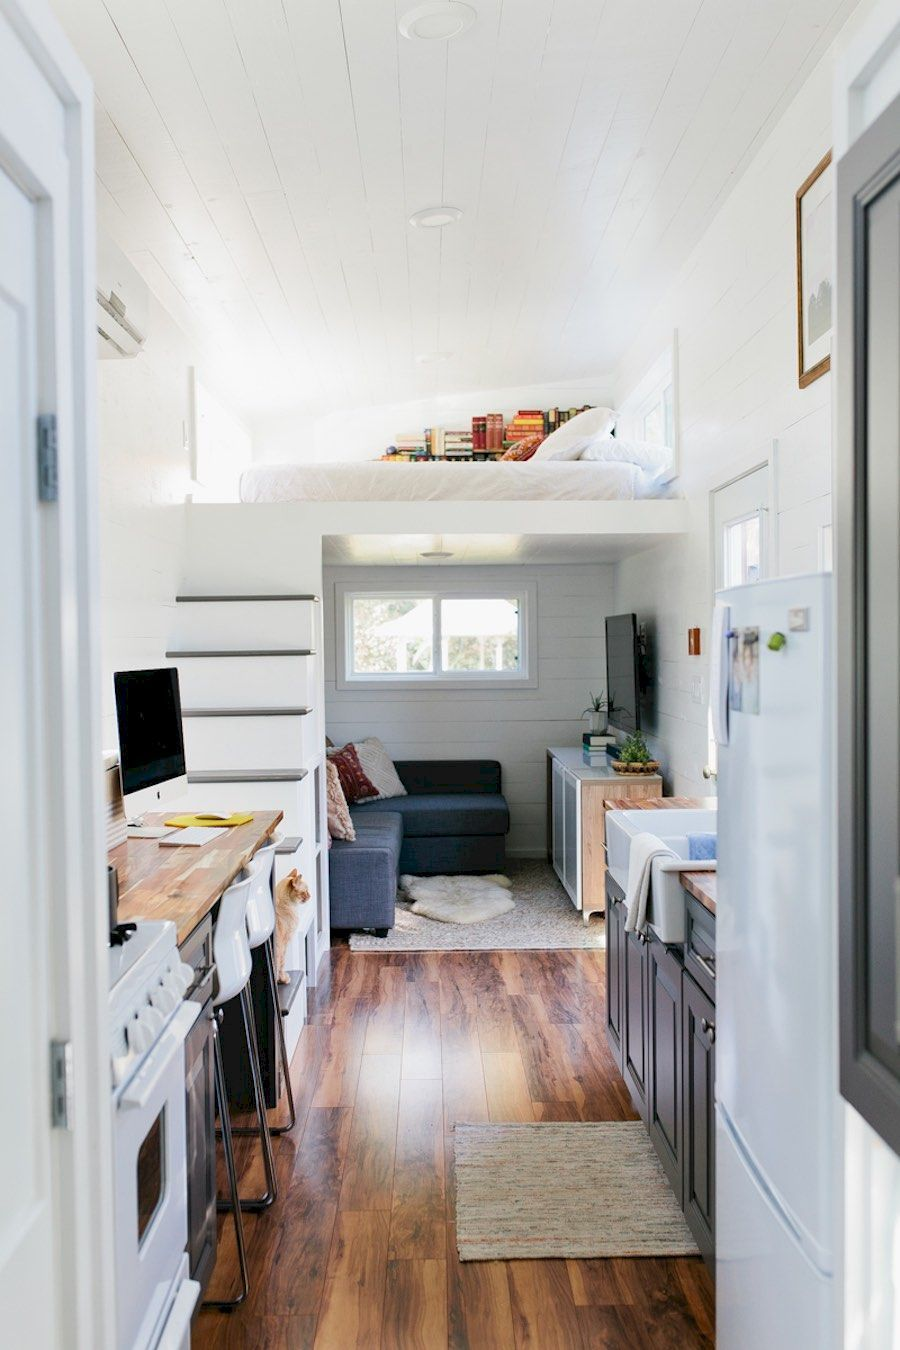 The Best Tiny House Interiors Plans We Could Actually Live In 43 Ideas Decoredo Tiny House Interior Modern Tiny House Tiny House Living